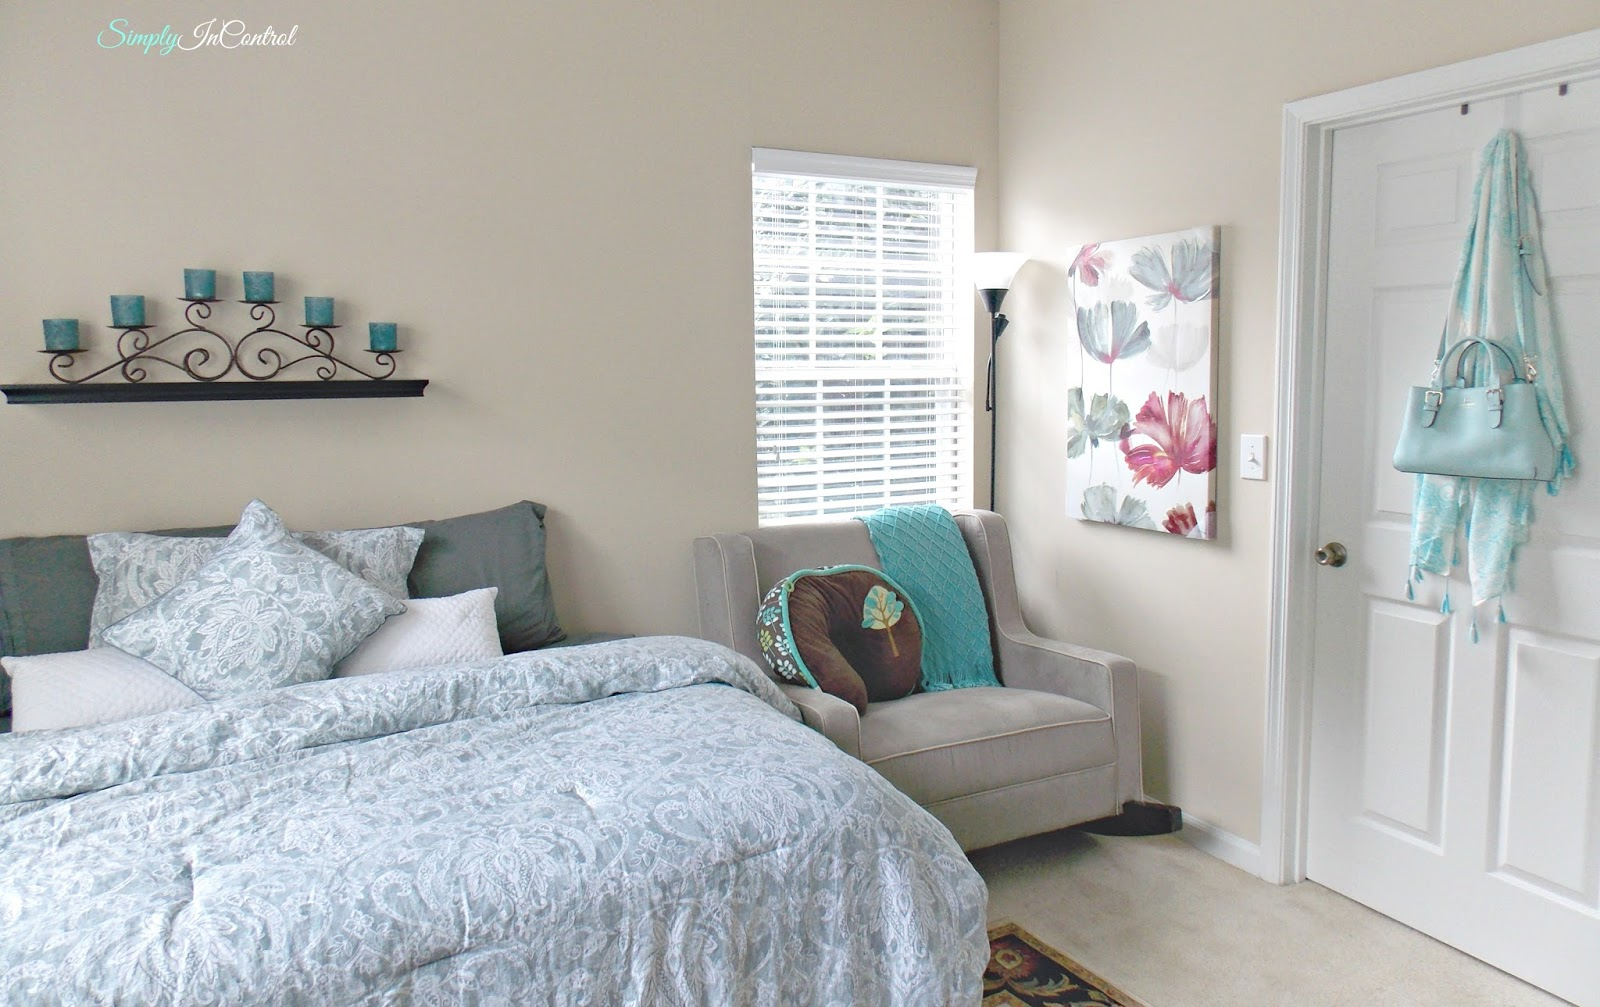 Guest Room/Office Combo, And How To Make Guests Feel Welcome!